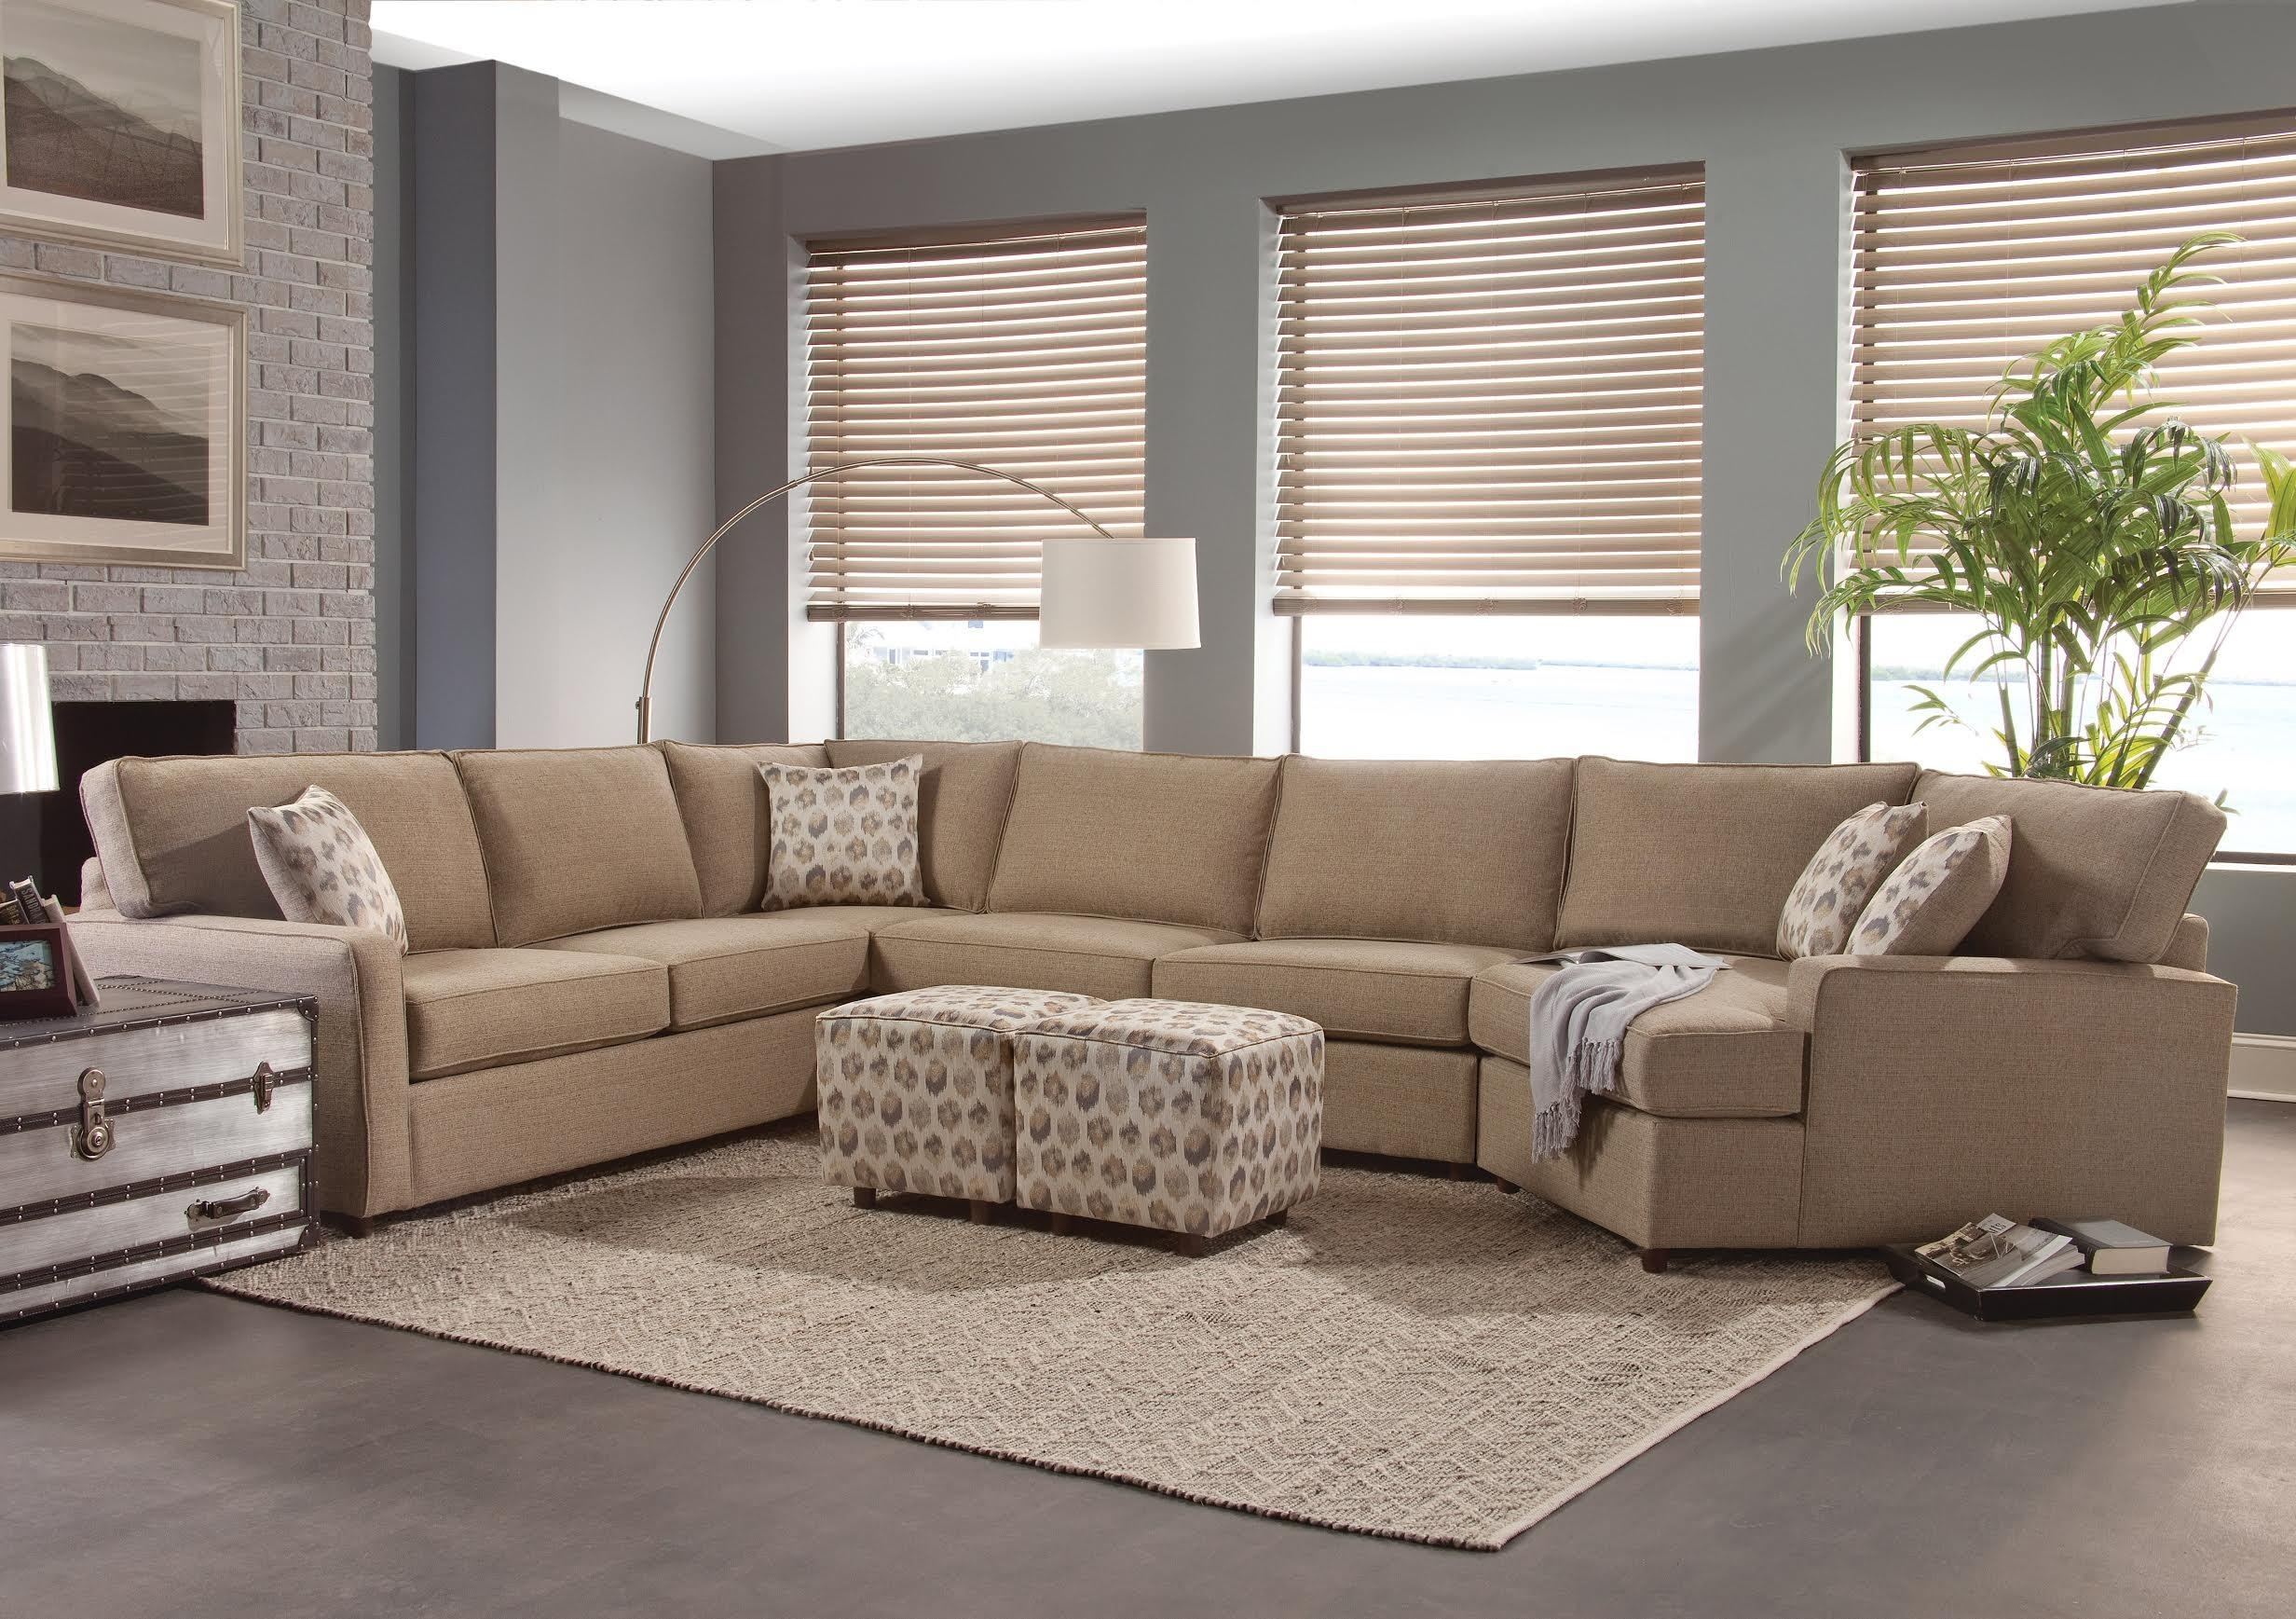 10 best collection of virginia sectional sofas for Sectional sofas virginia